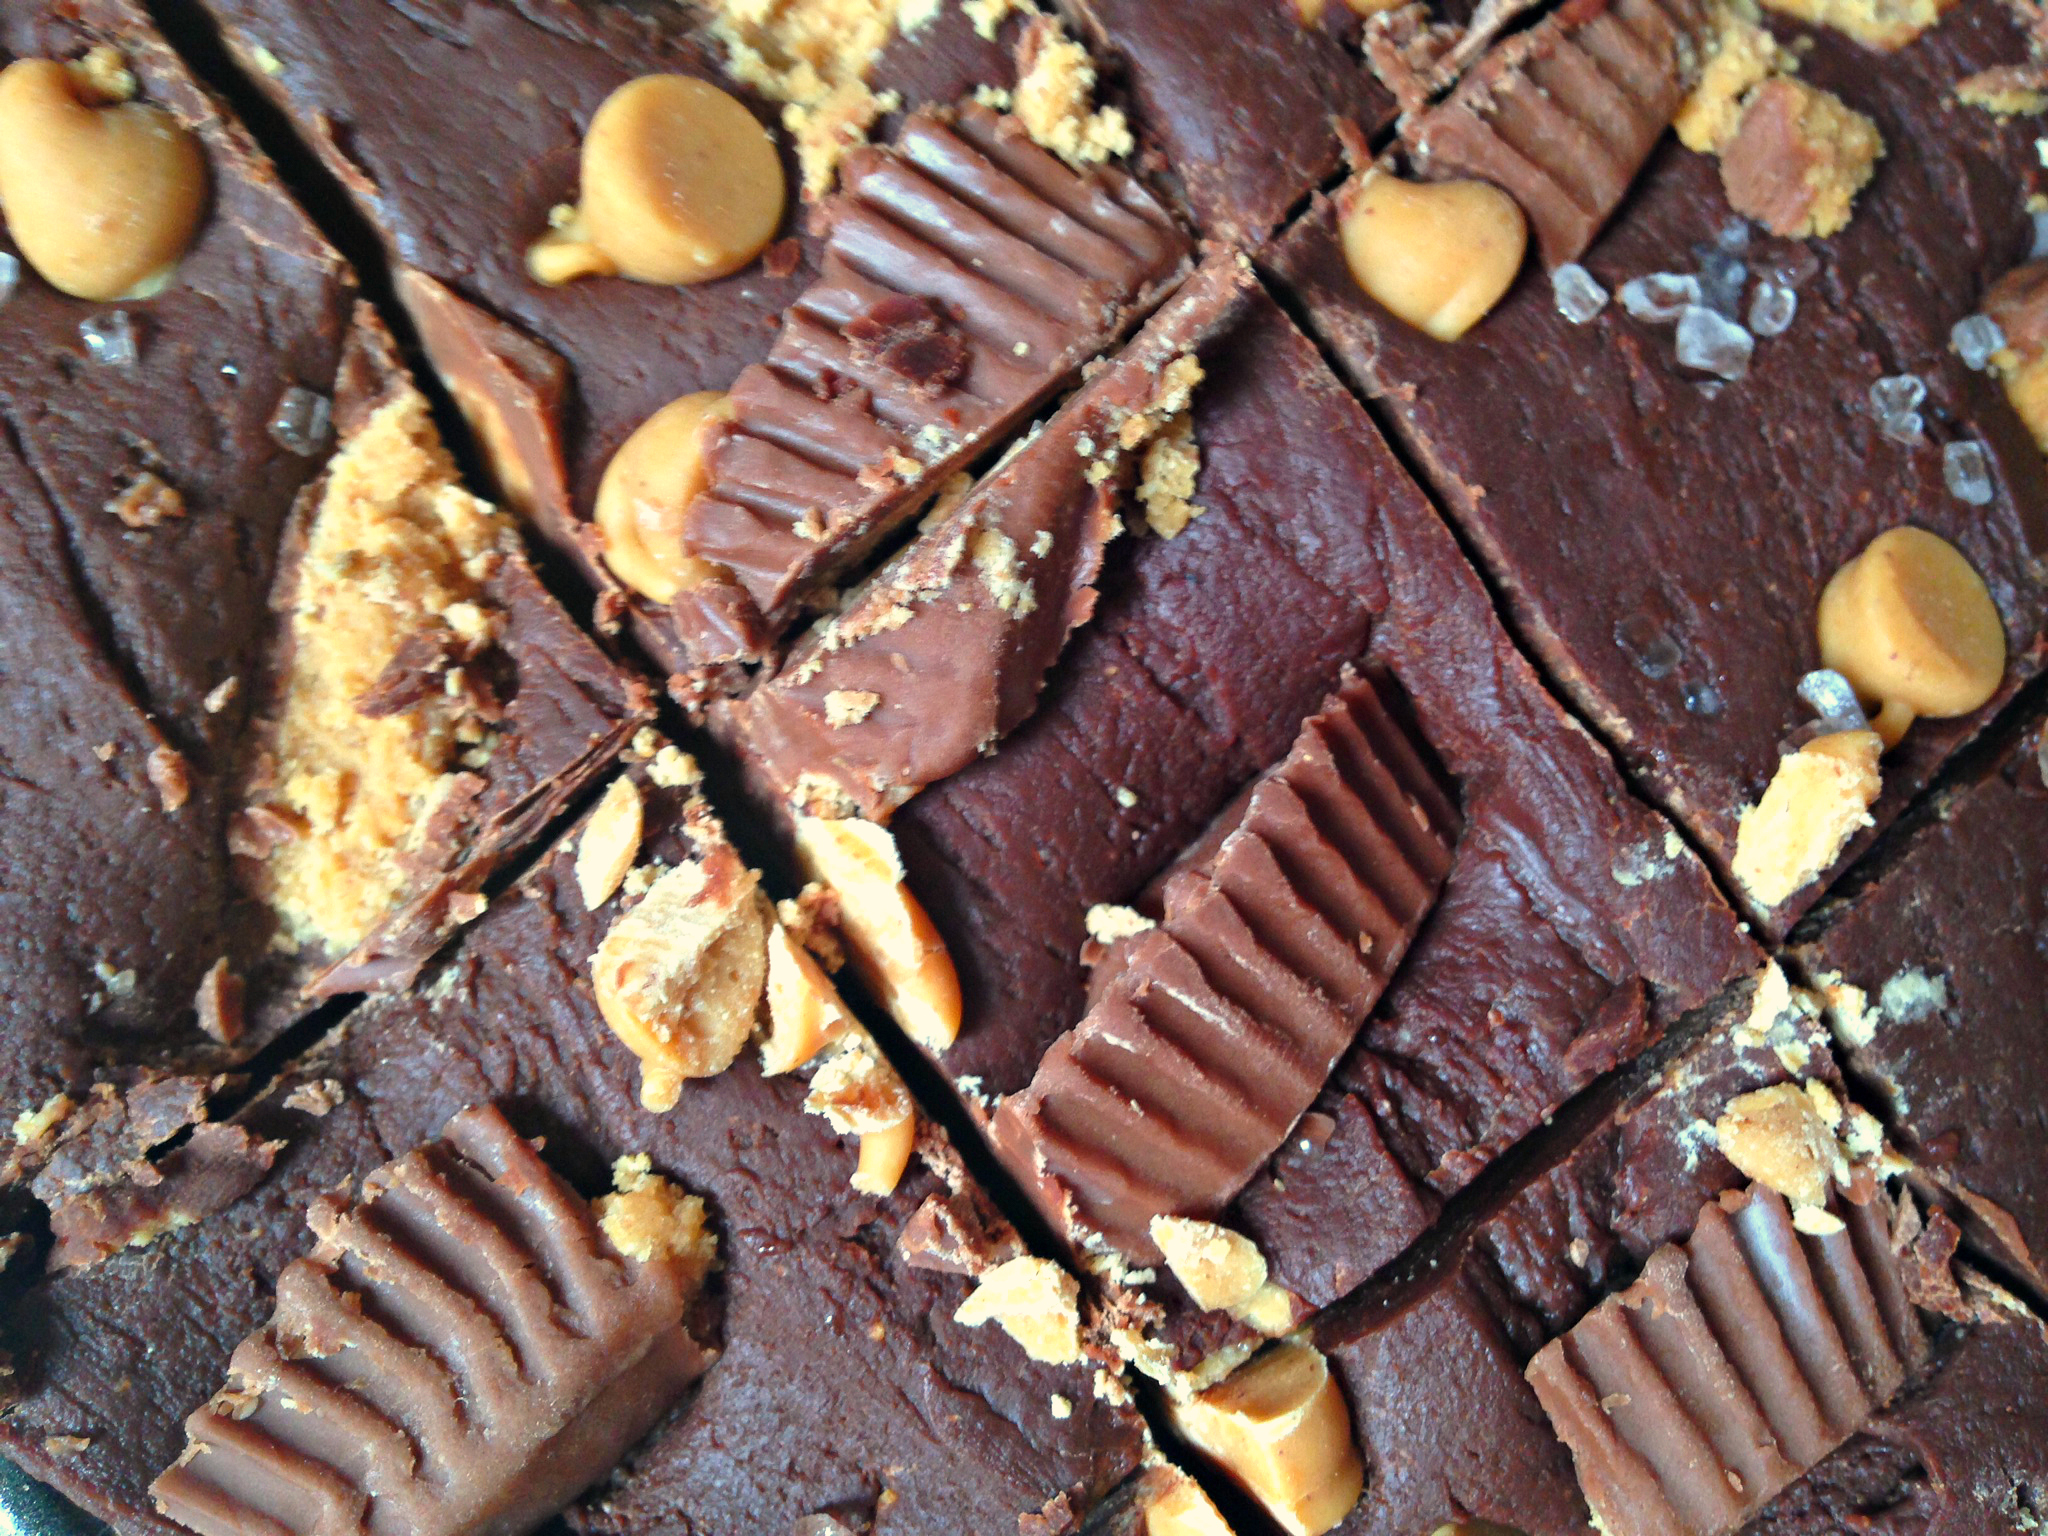 Reese's Chocolate Peanut Butter Cup Fudge | kerrycooks.com